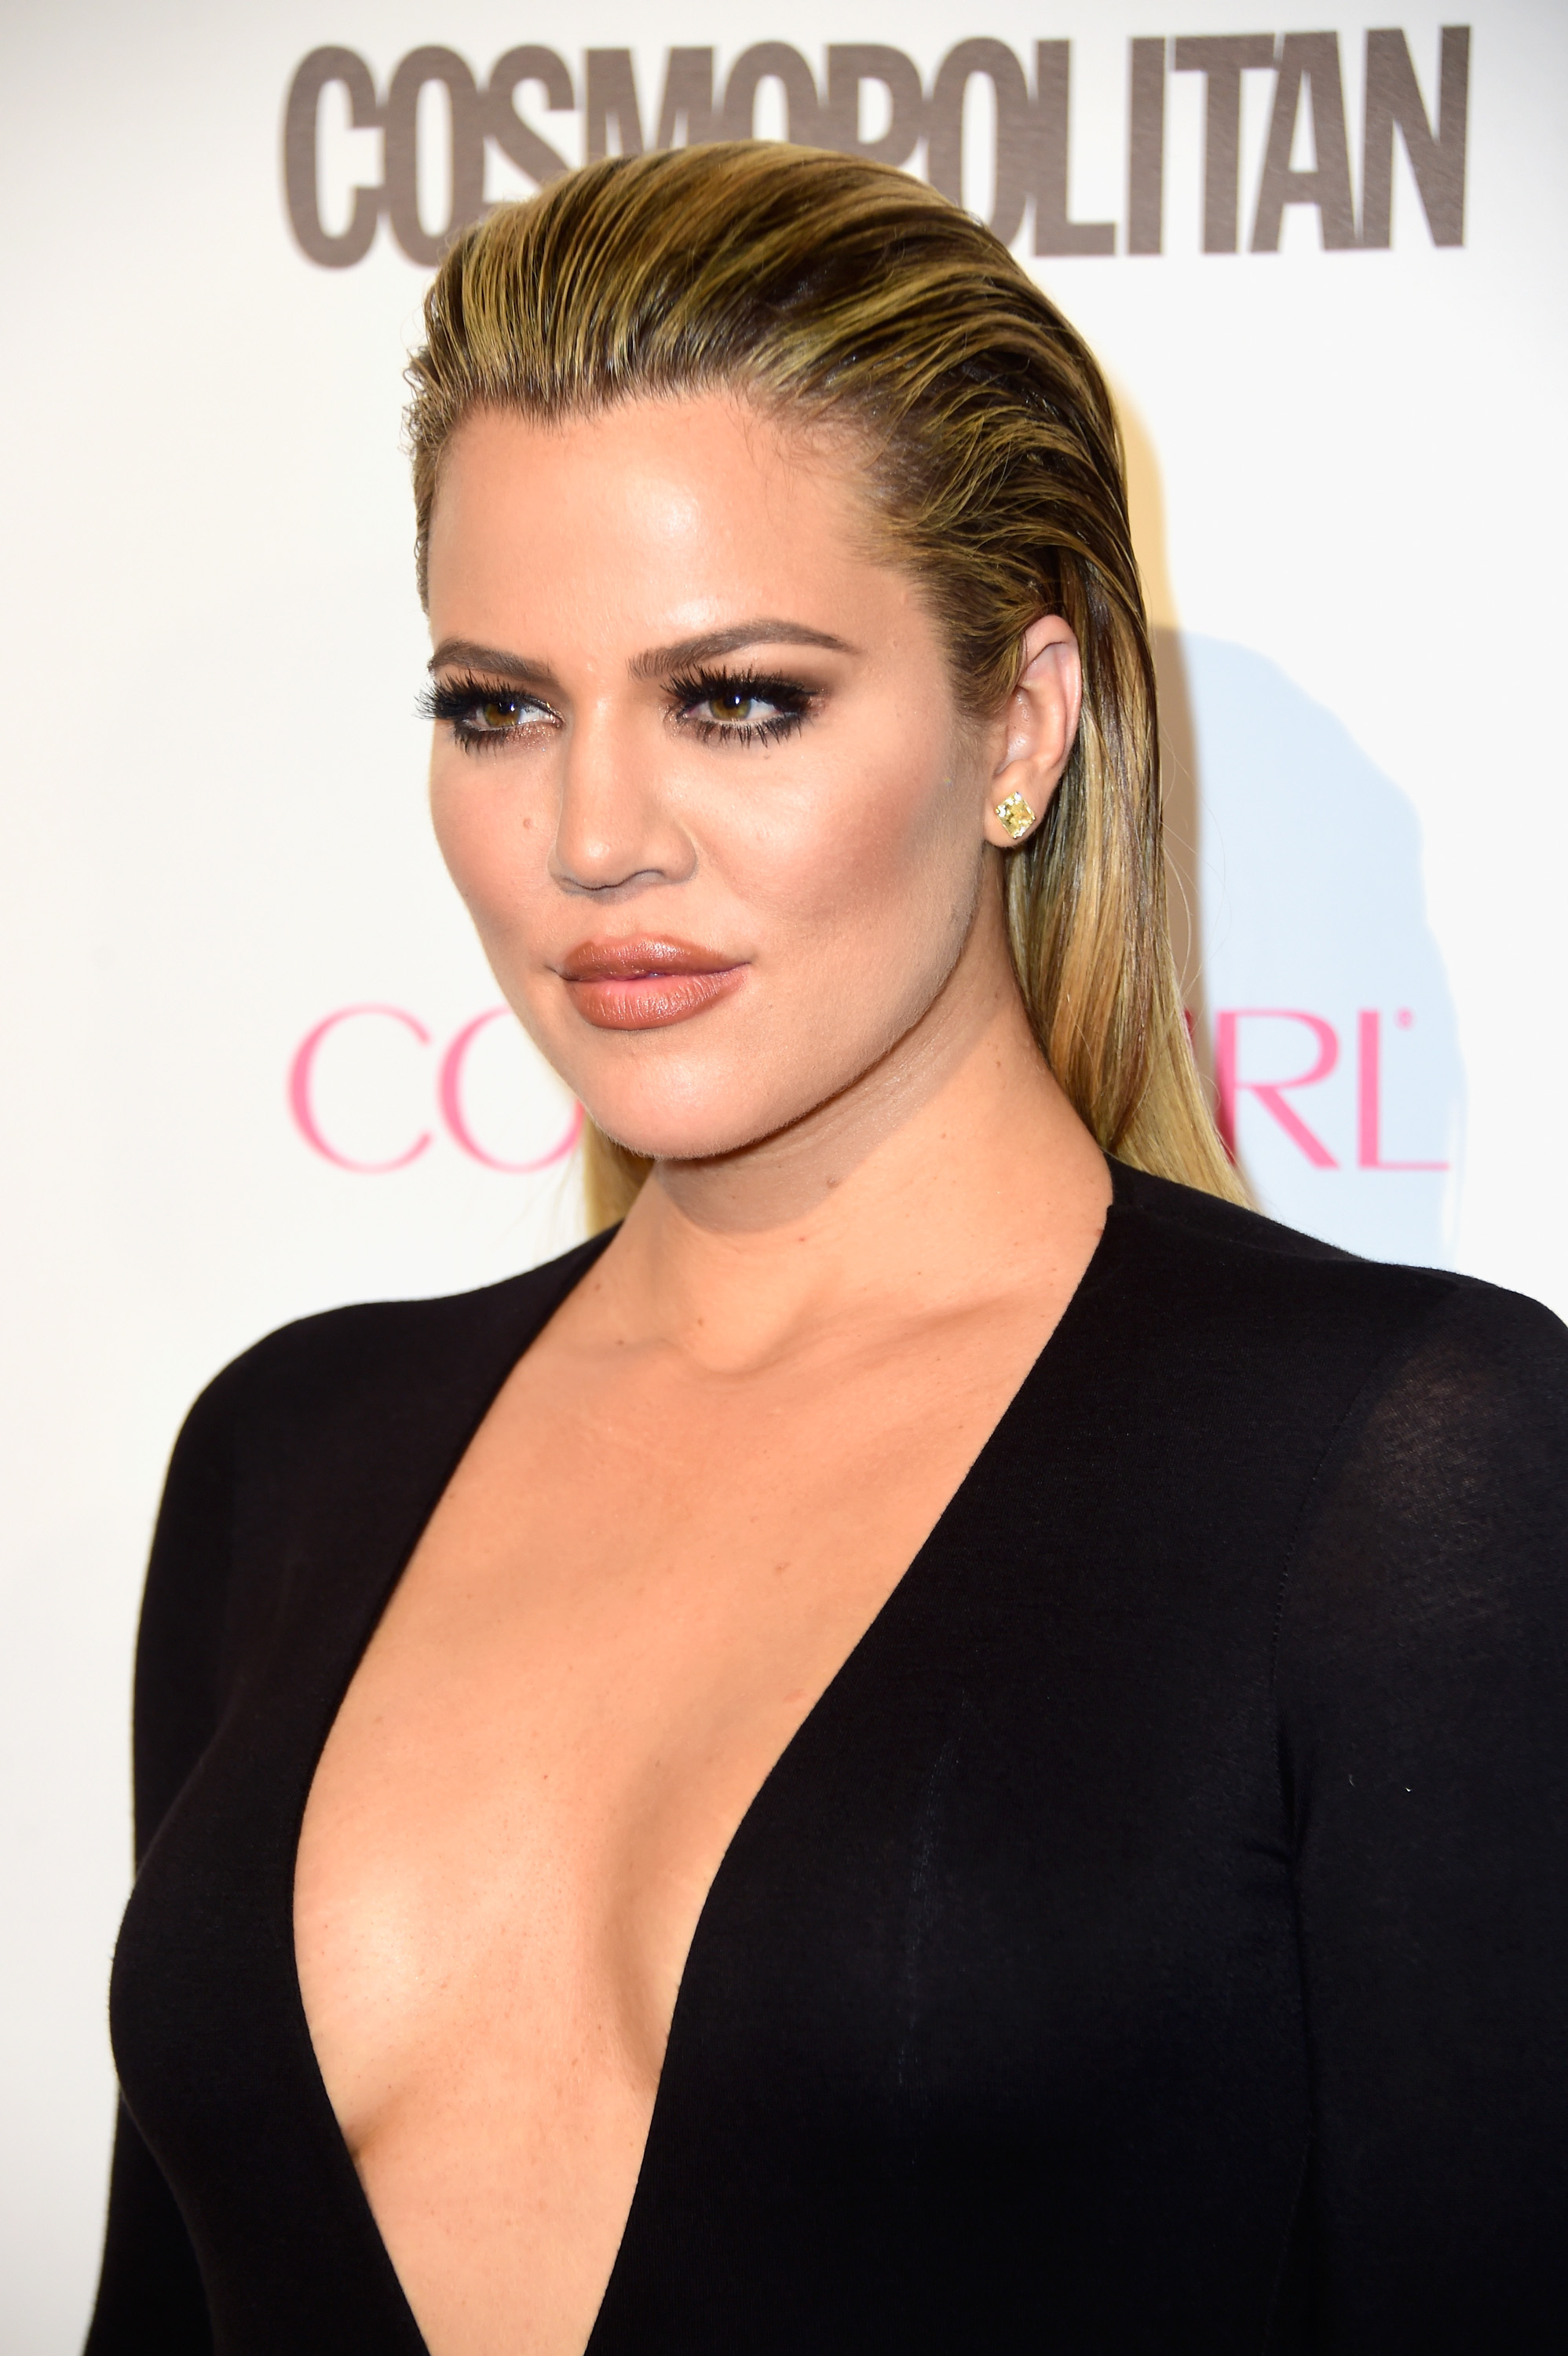 Khloe Kardashian Cuts Her Hair Debuts Blonde Lob Photos